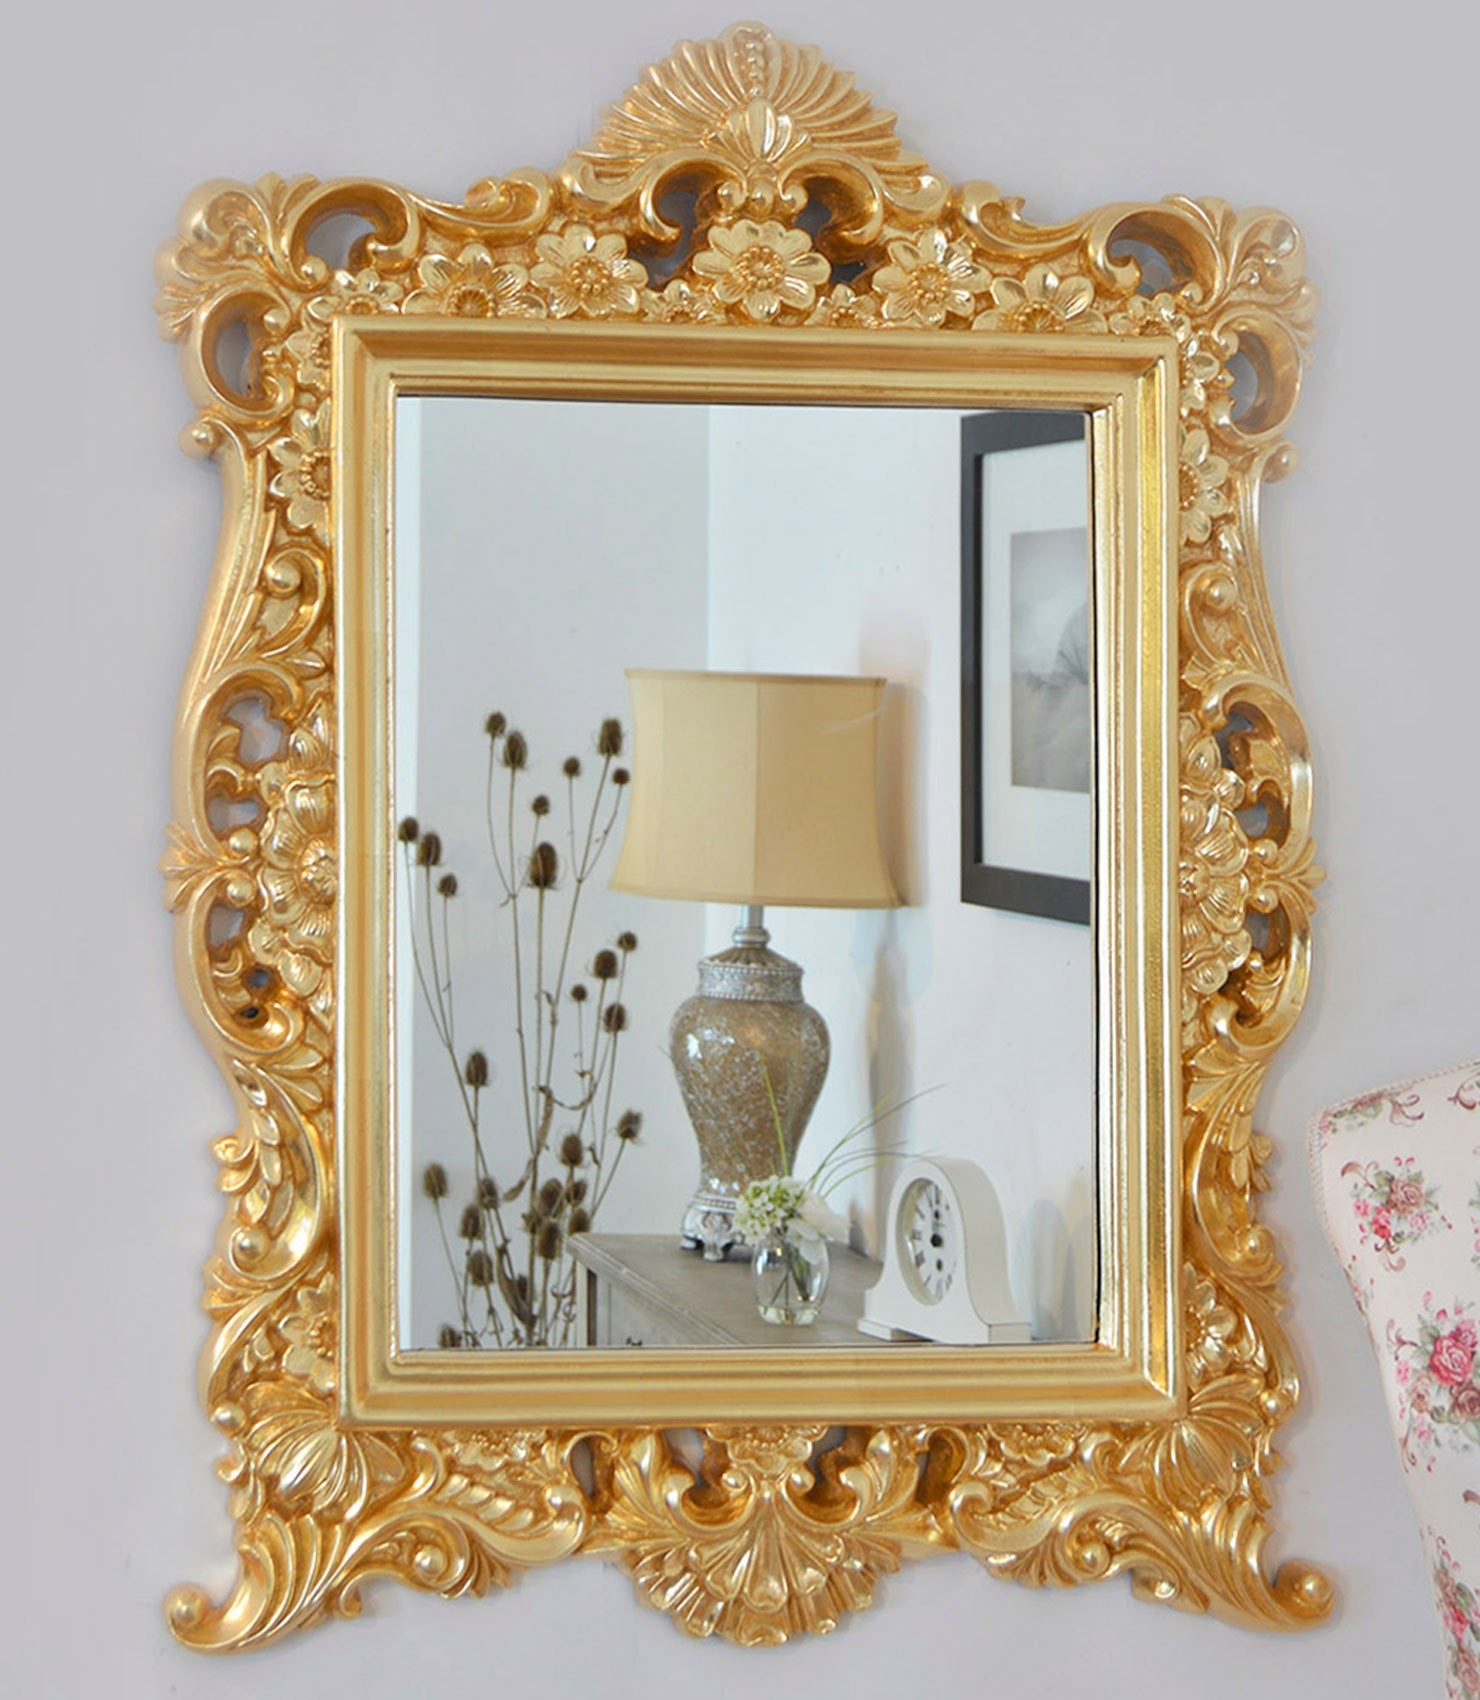 Large Gold Baroque Style Portrait Ornate Wall Mirror 2ft9 X 2ft1 For Baroque Gold Mirror (Image 14 of 15)